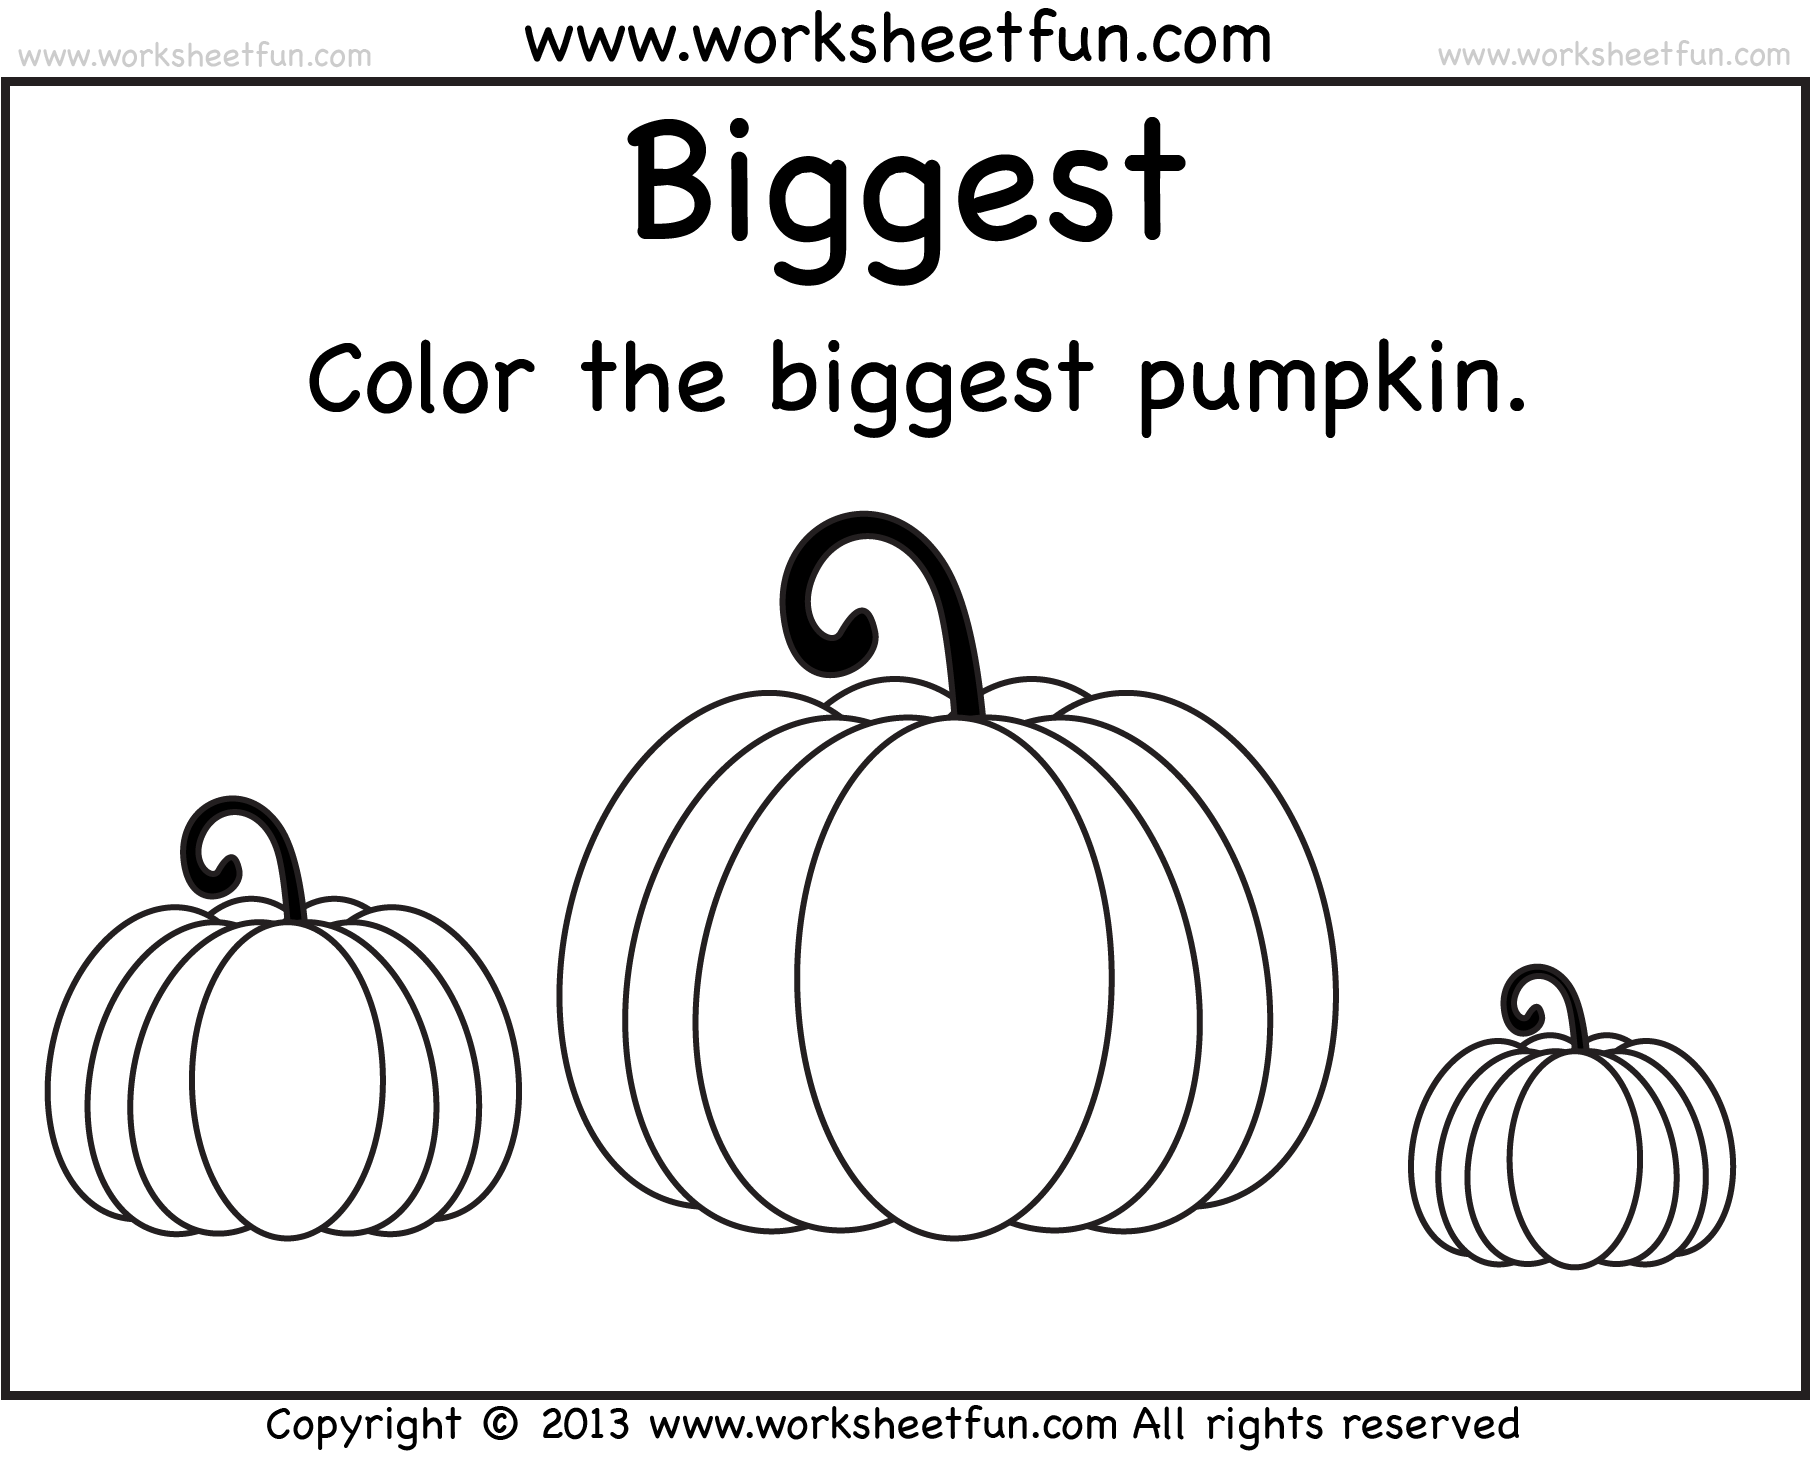 Biggest And Smallest Pumpkin 2 Worksheets Free Printable Worksheets Worksheetfun